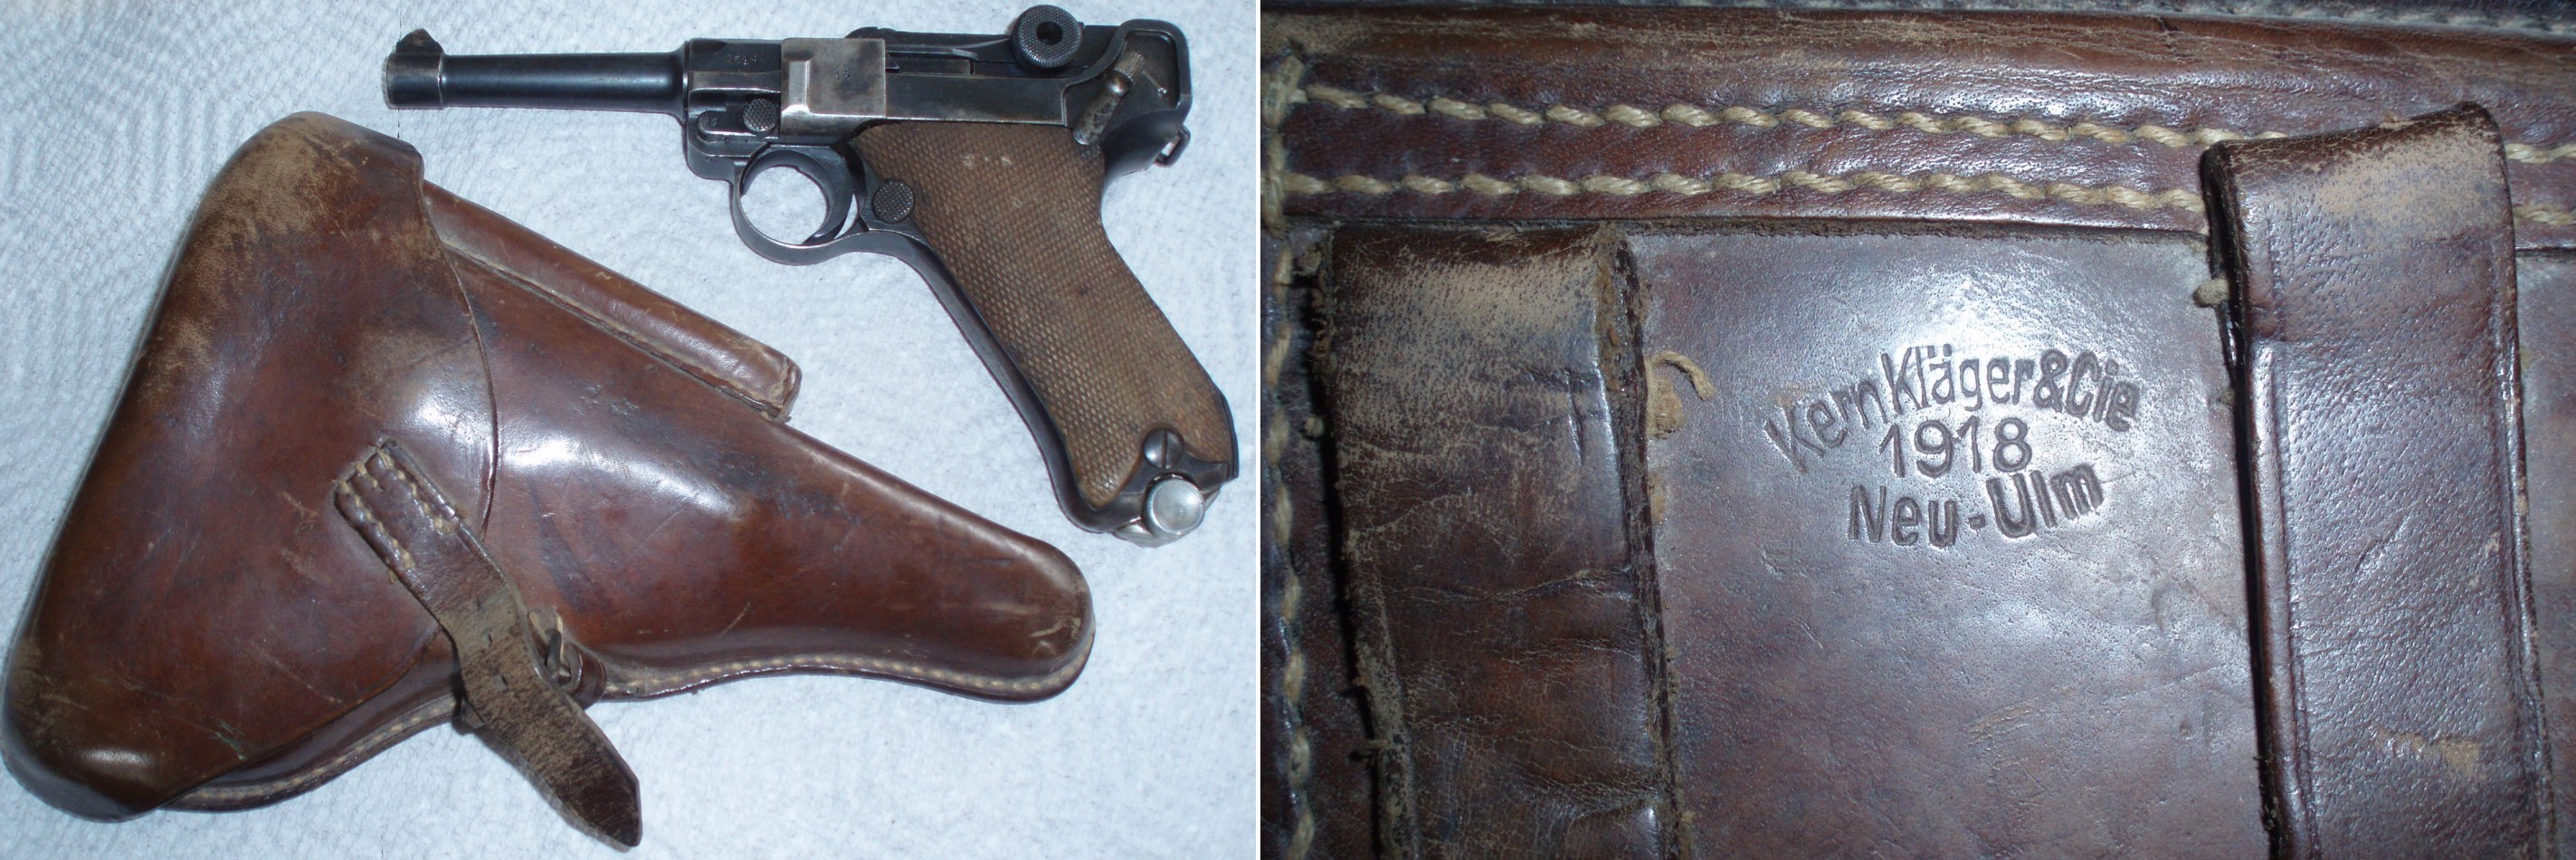 PHOTO Nazi Luger P08 (Pistolle Parabellum) Found by Hubert Brooks